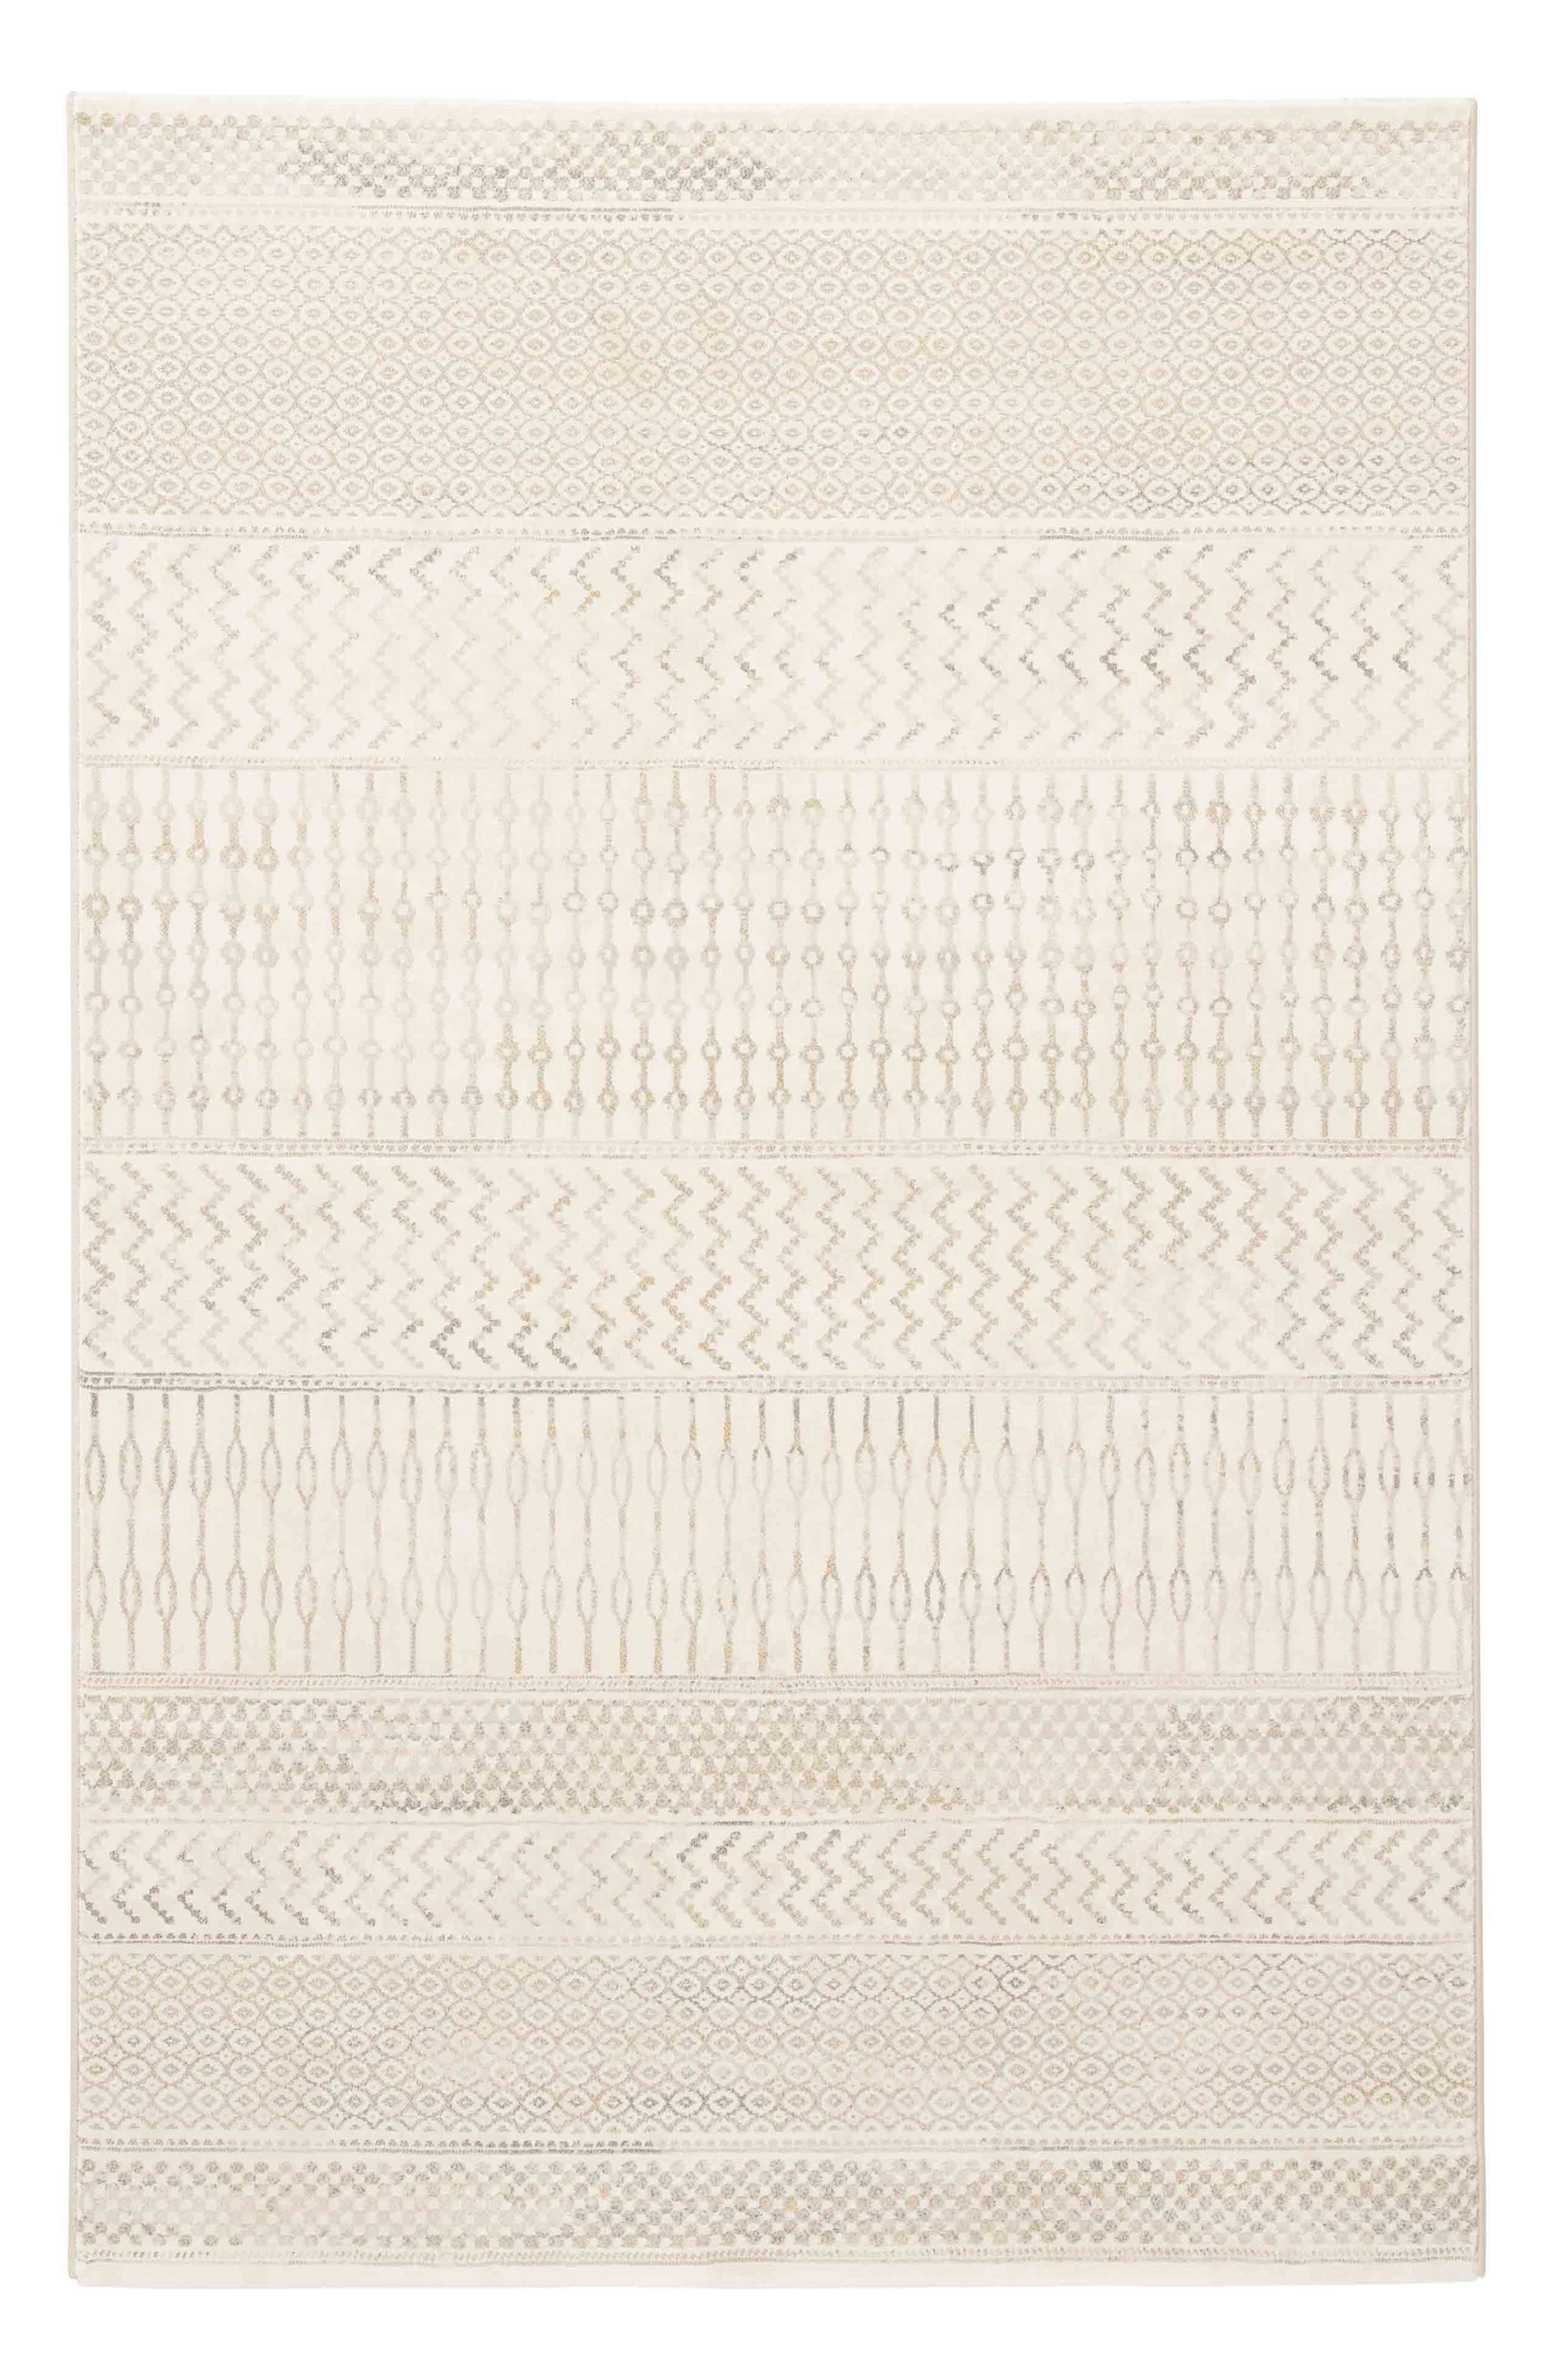 Contemporary Loft Rug,                         Main,                         color, CREAM TAN